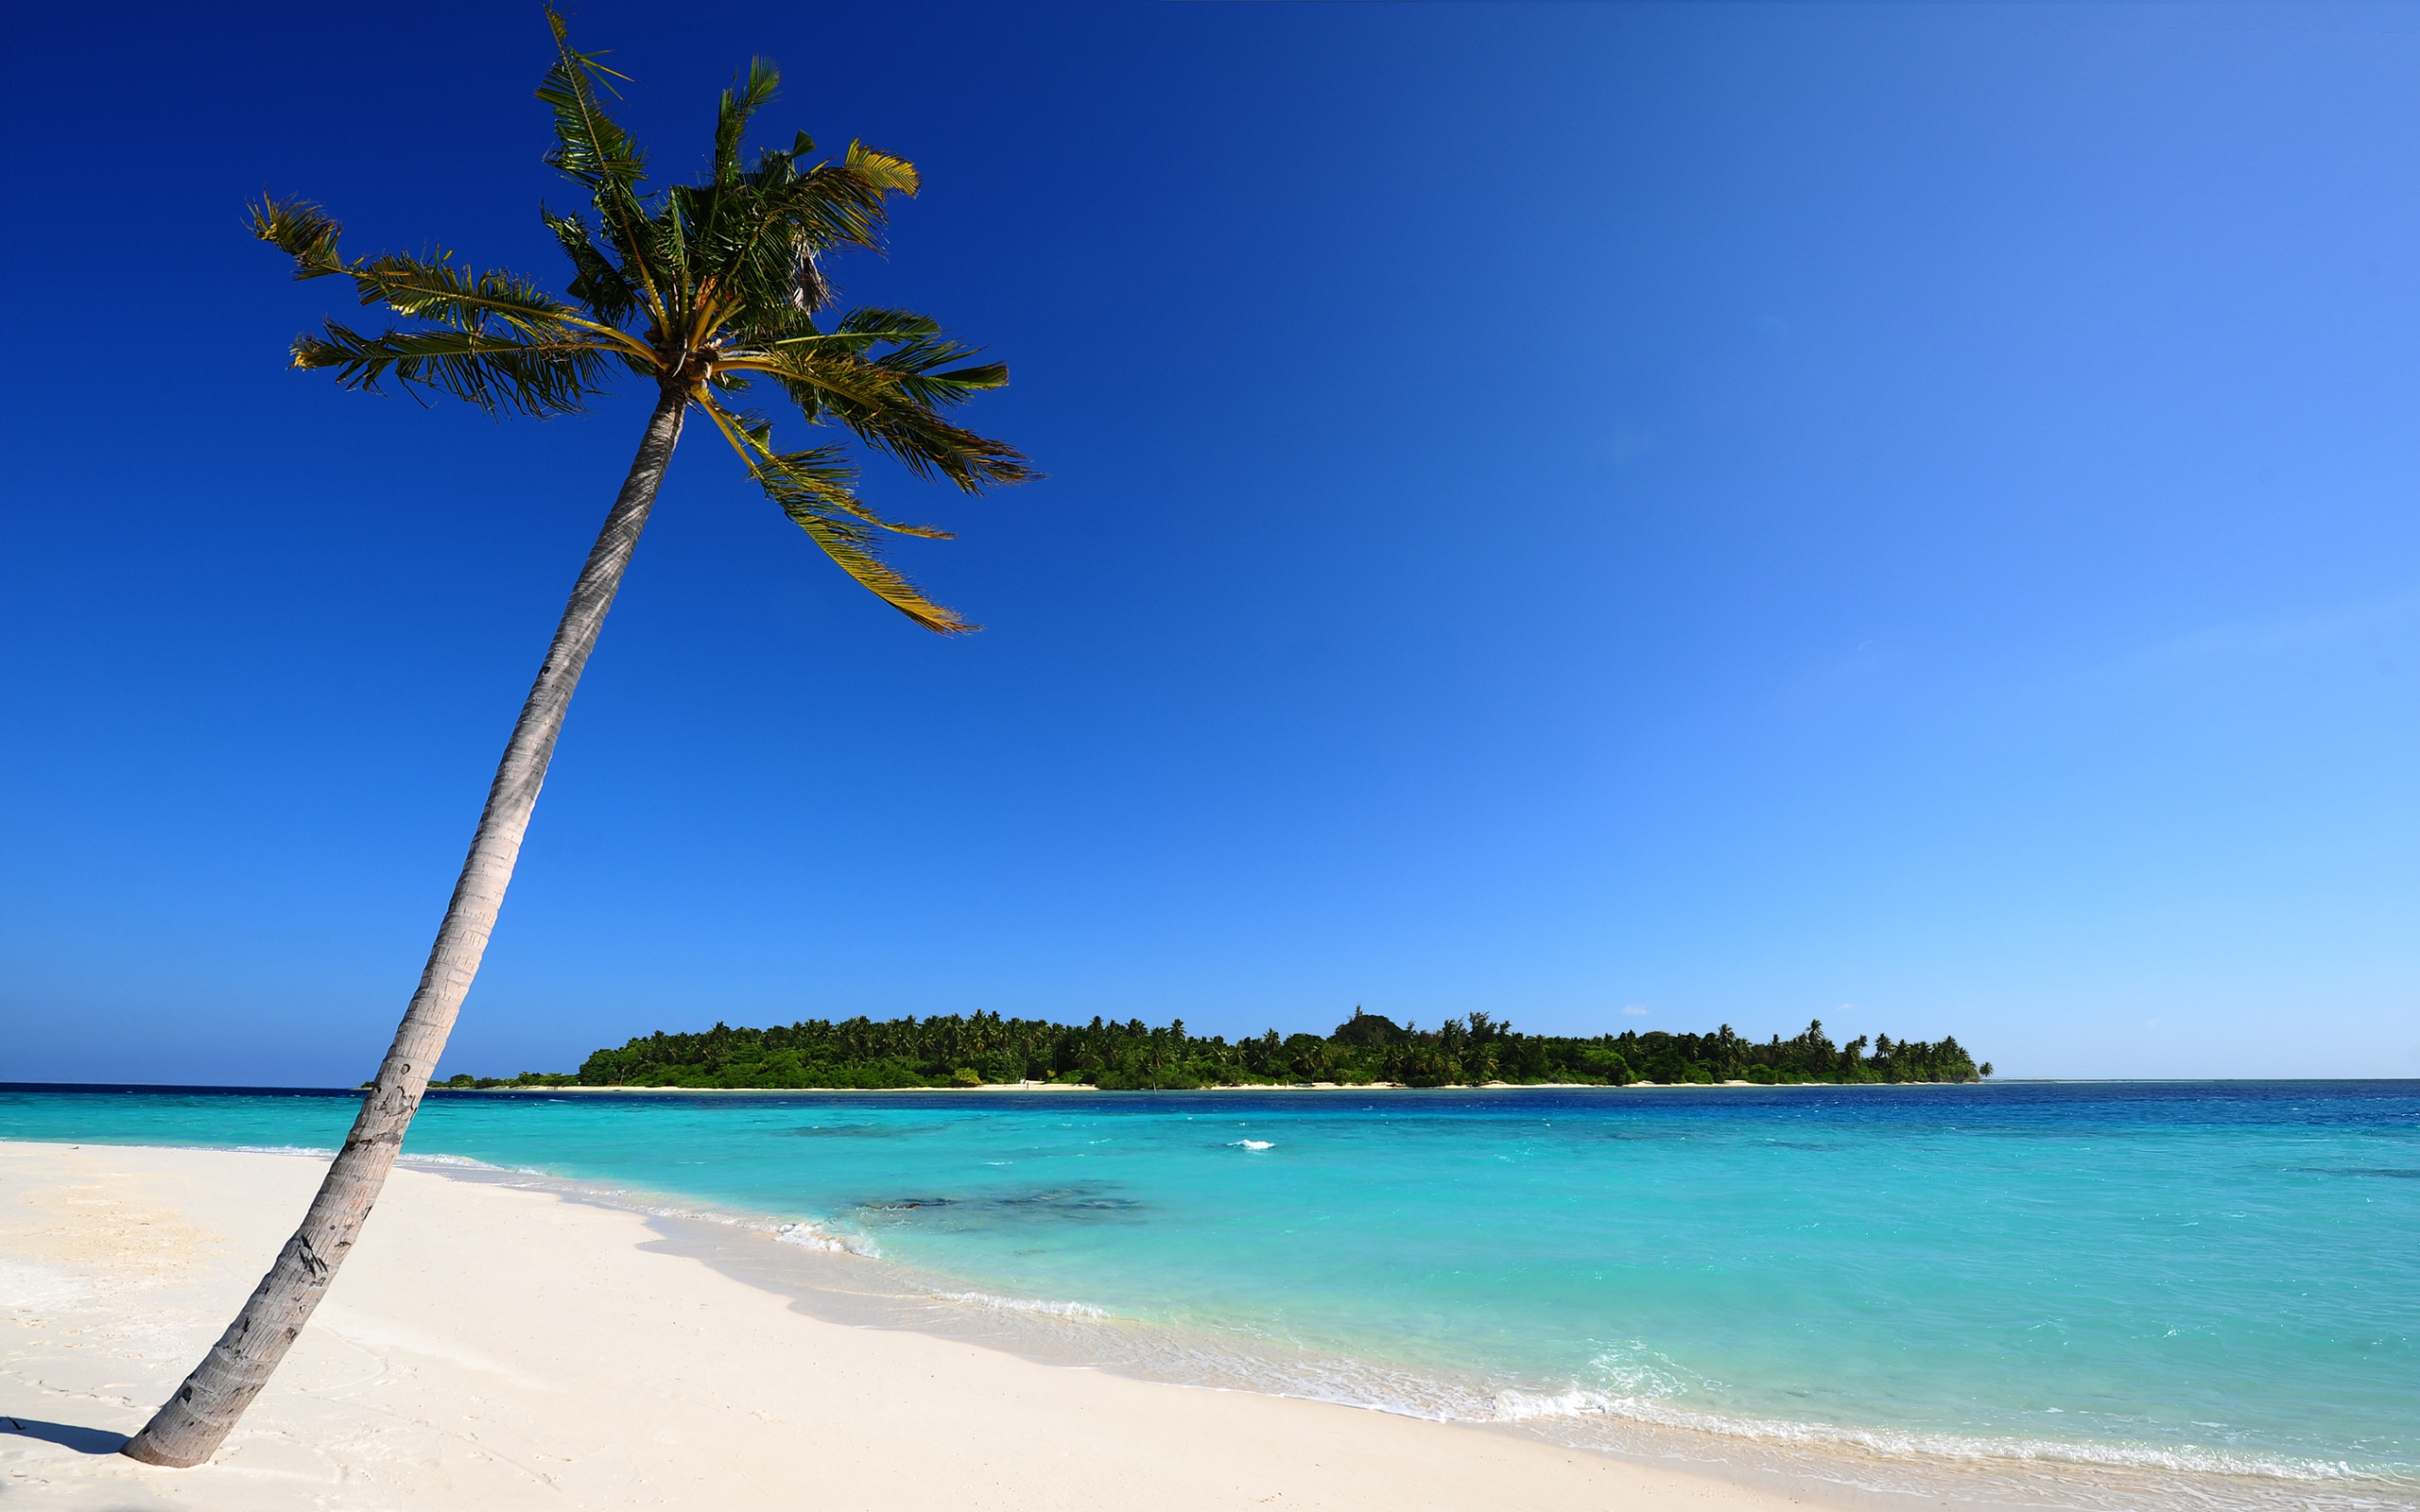 Desktop Backgrounds Beach Theme   wallpaper 2560x1600